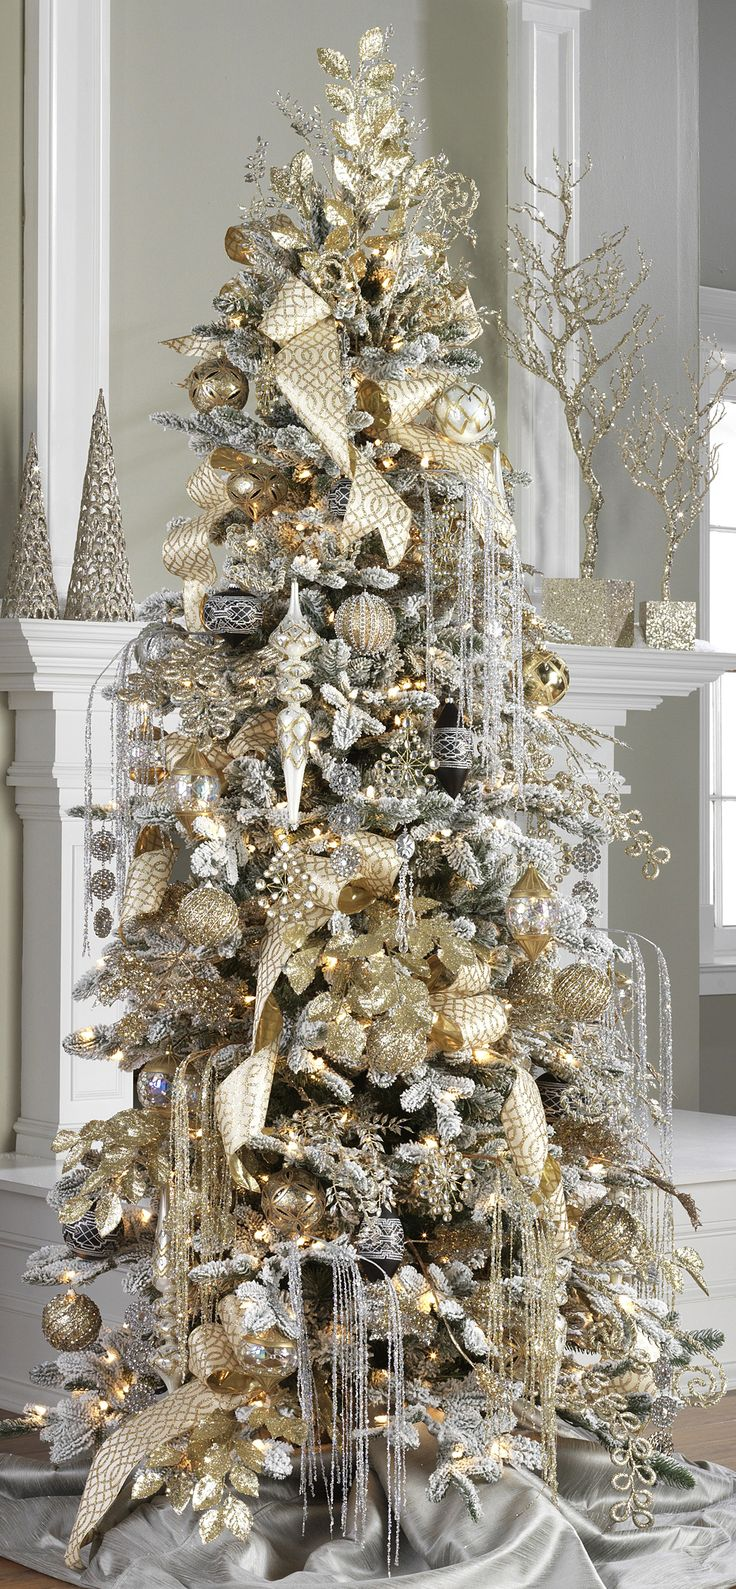 Best 25 elegant christmas trees ideas only on pinterest for White and gold tree decorations